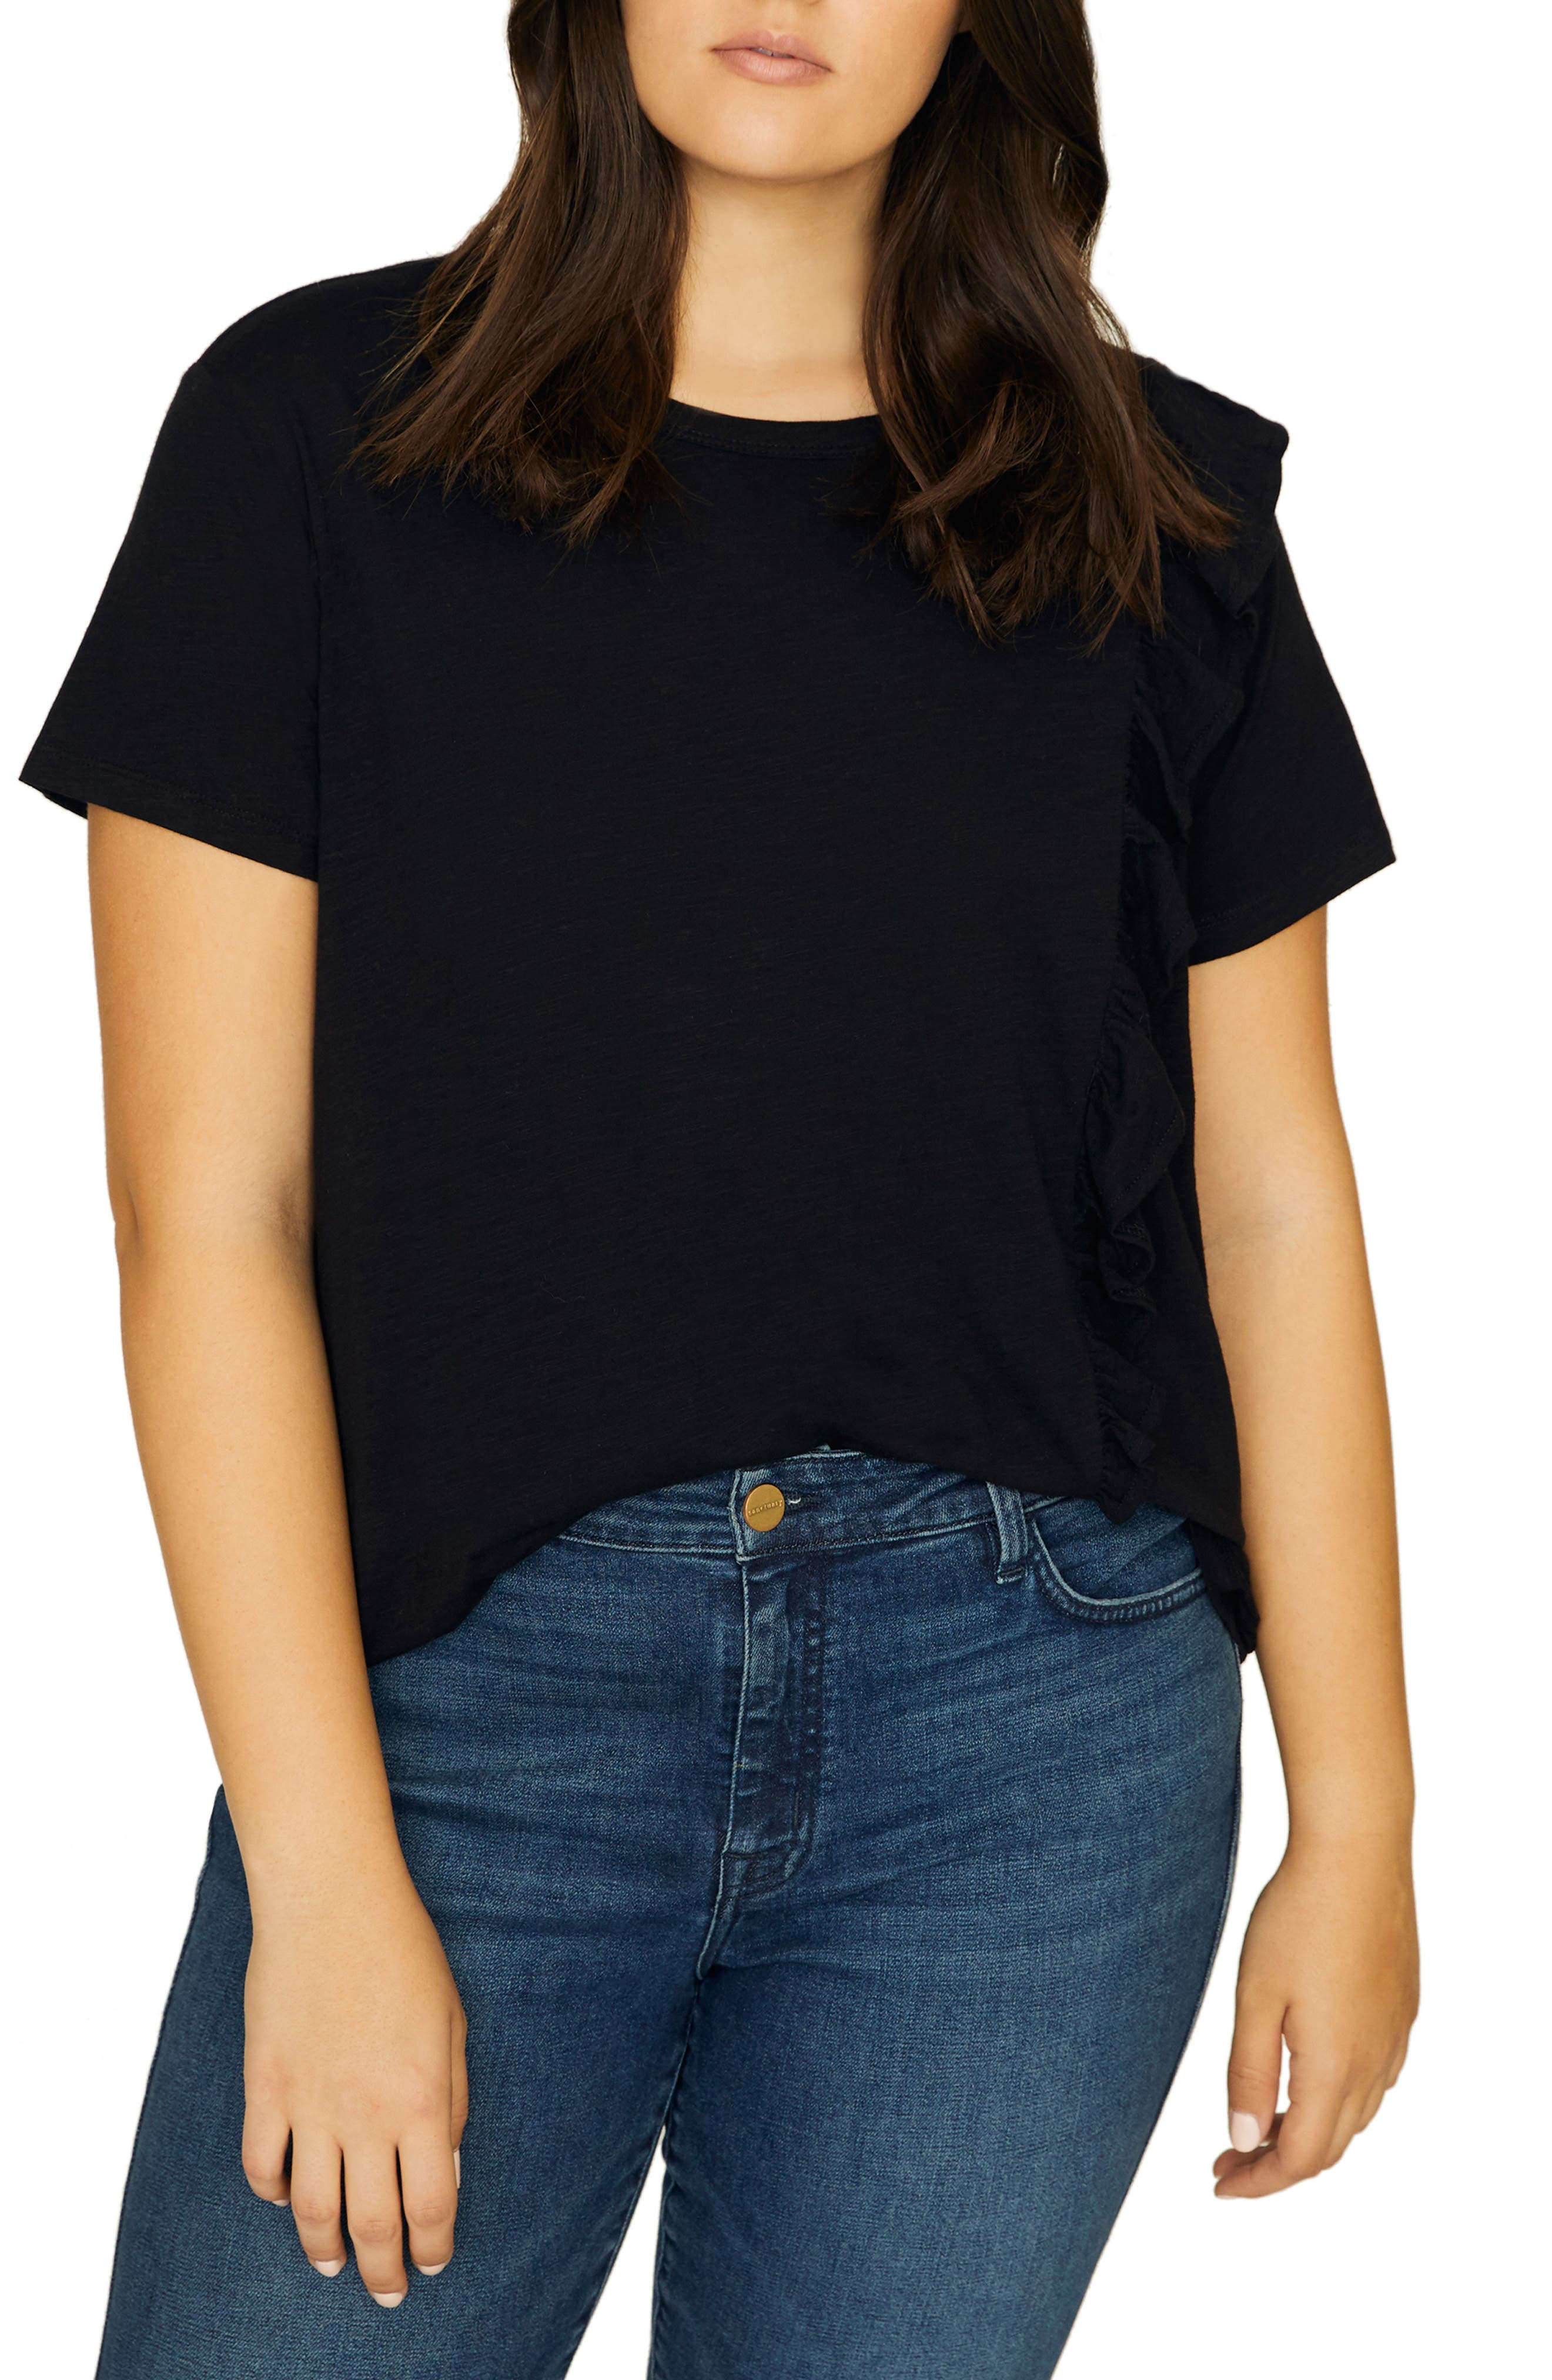 SANCTUARY, Gia Ruffle Trim Tee, Main thumbnail 1, color, BLACK